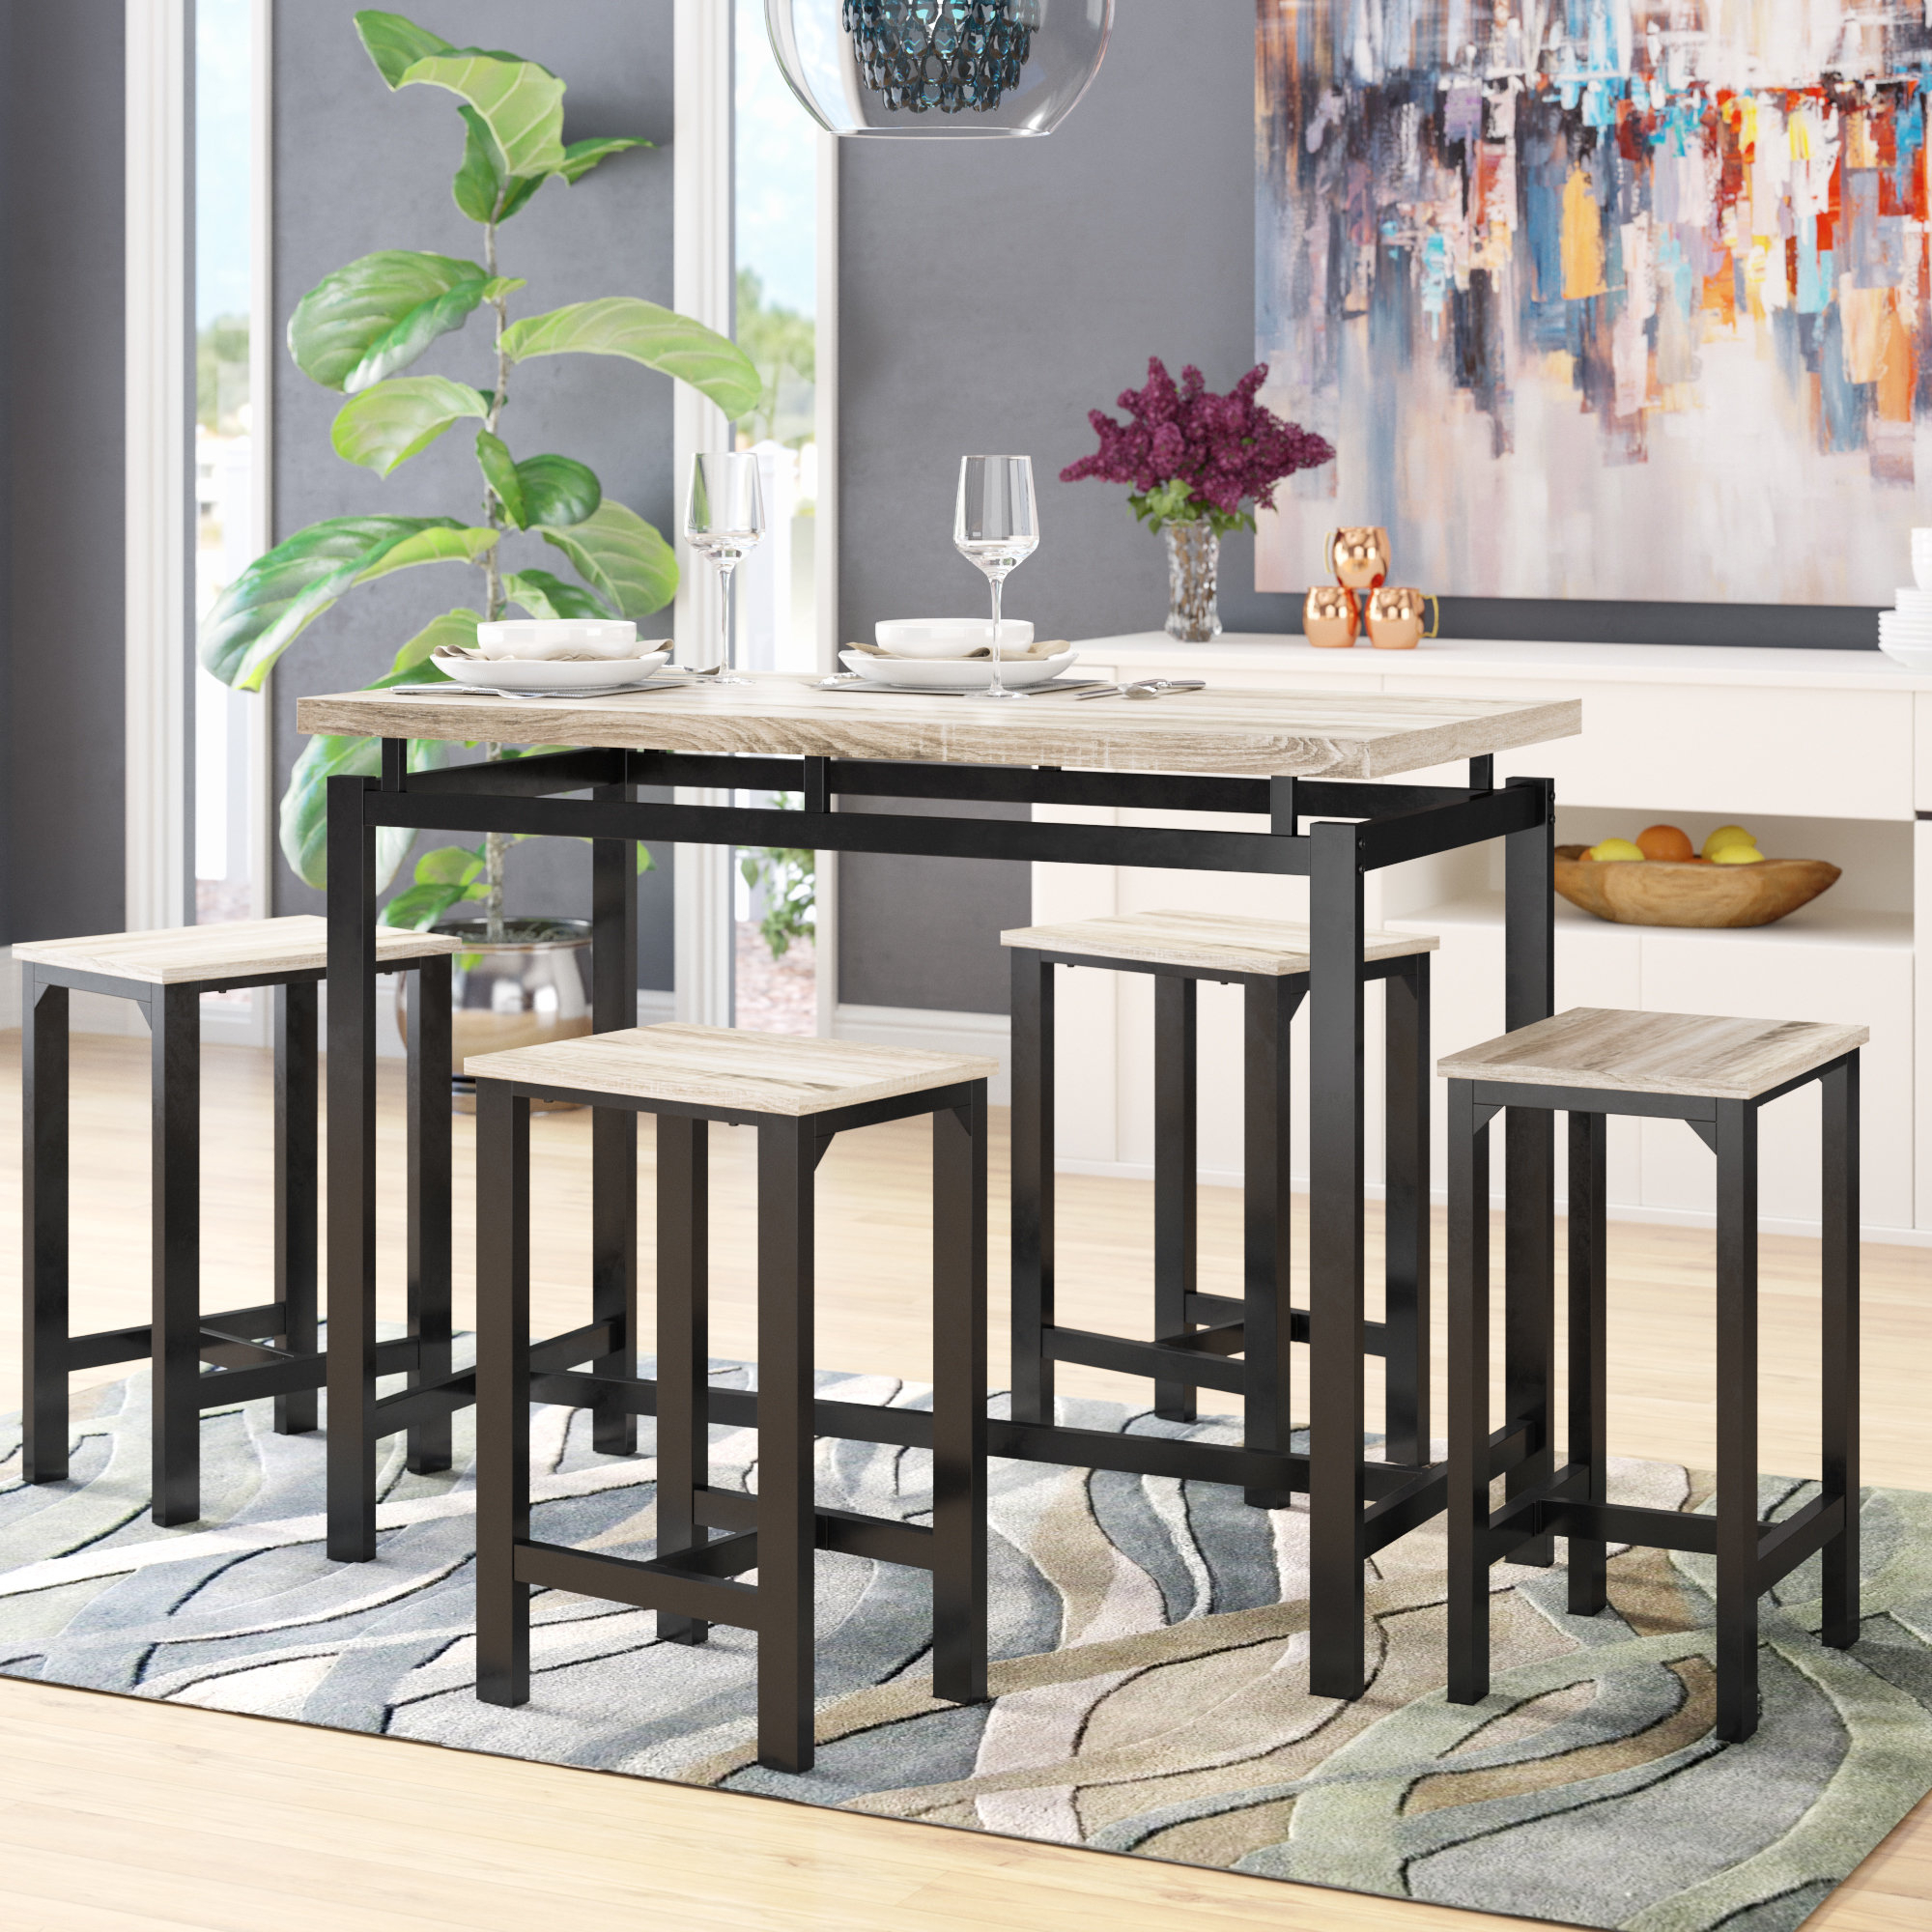 Weatherholt Dining Tables In Recent Latitude Run Weatherholt 5 Piece Pub Table Set & Reviews (View 3 of 25)